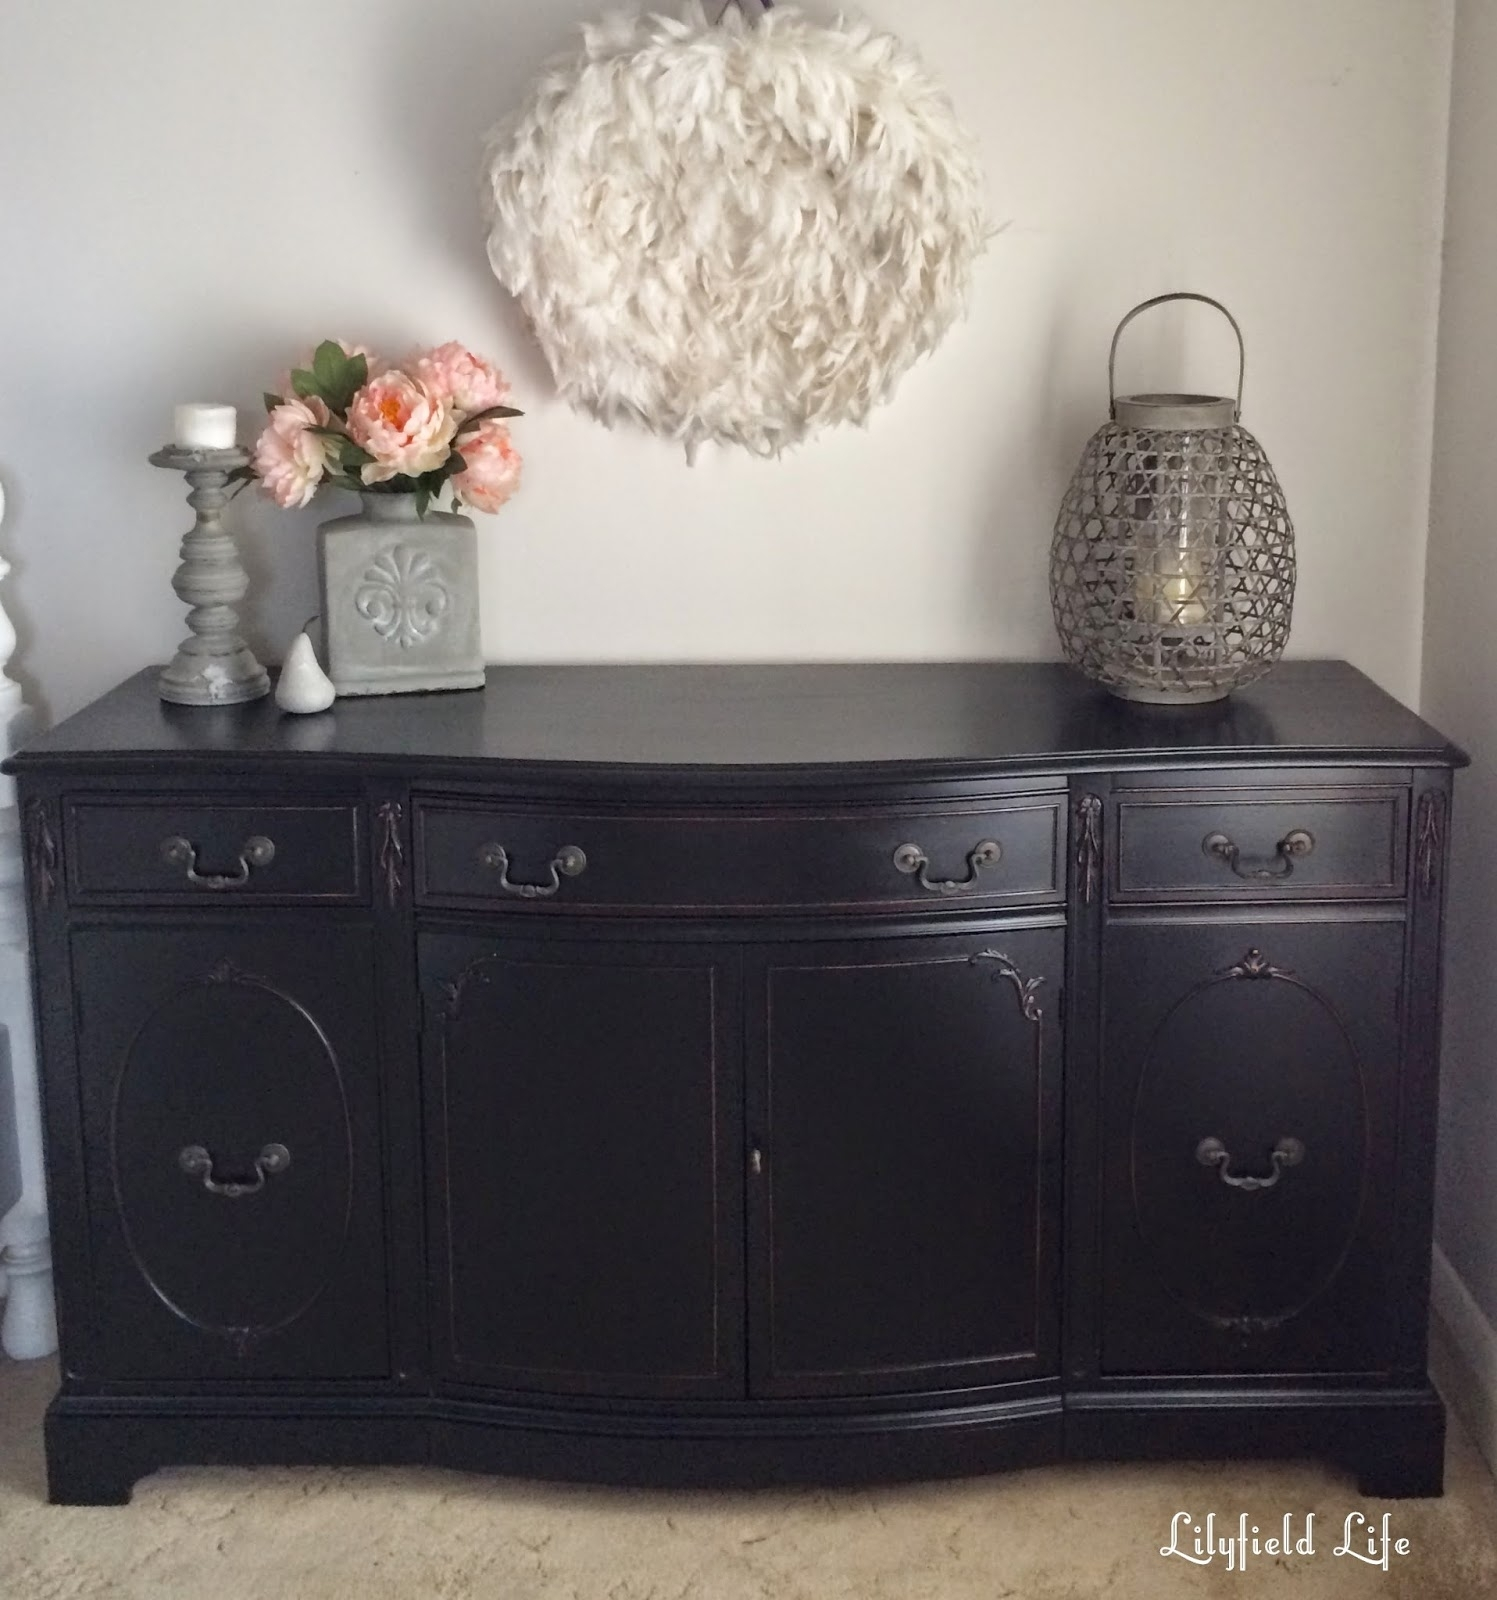 Popular Photo of Satin Black & Painted White Sideboards